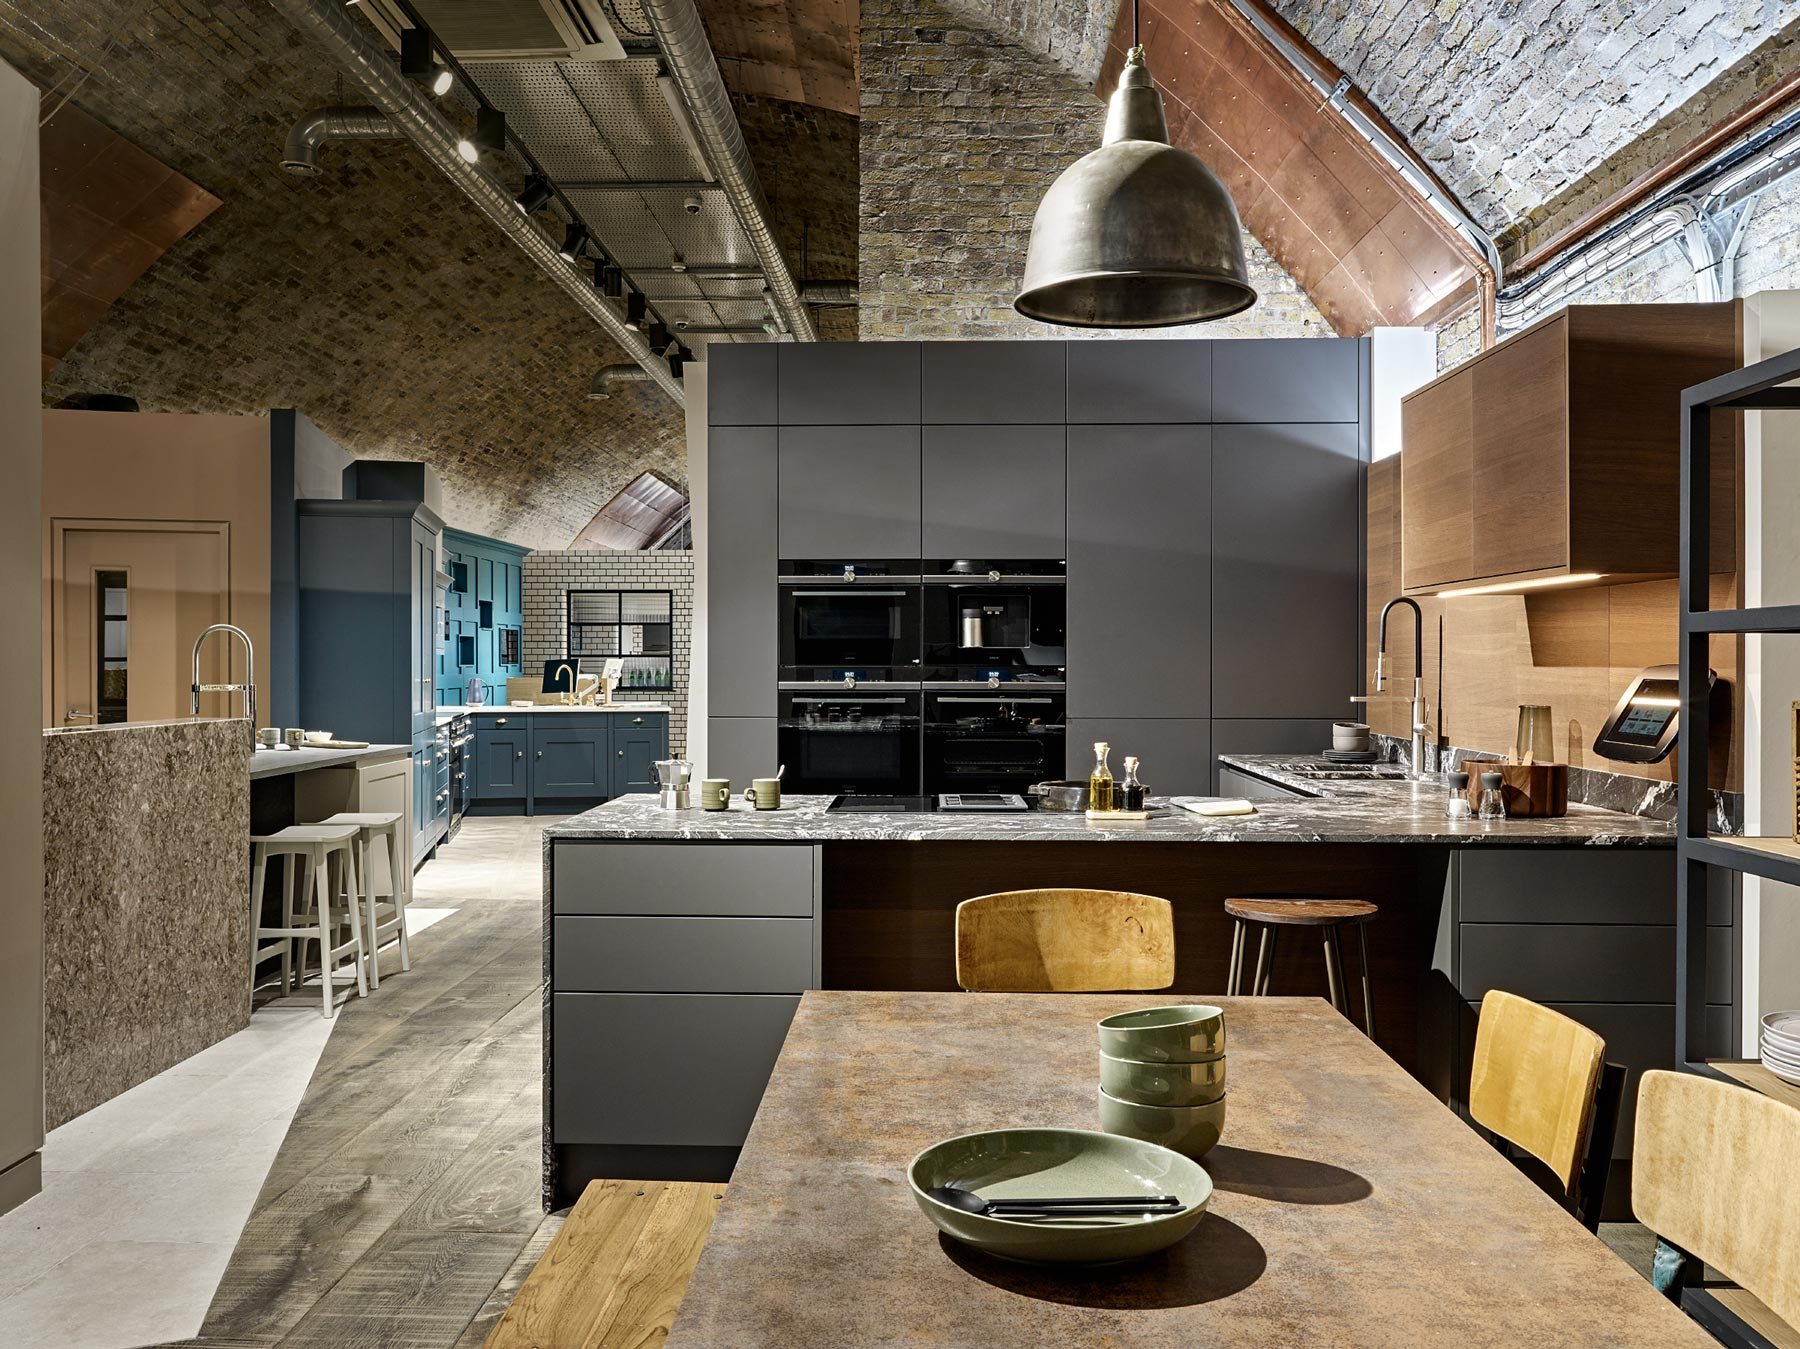 14 Must-Visit Kitchen Showrooms in London and SE For ...